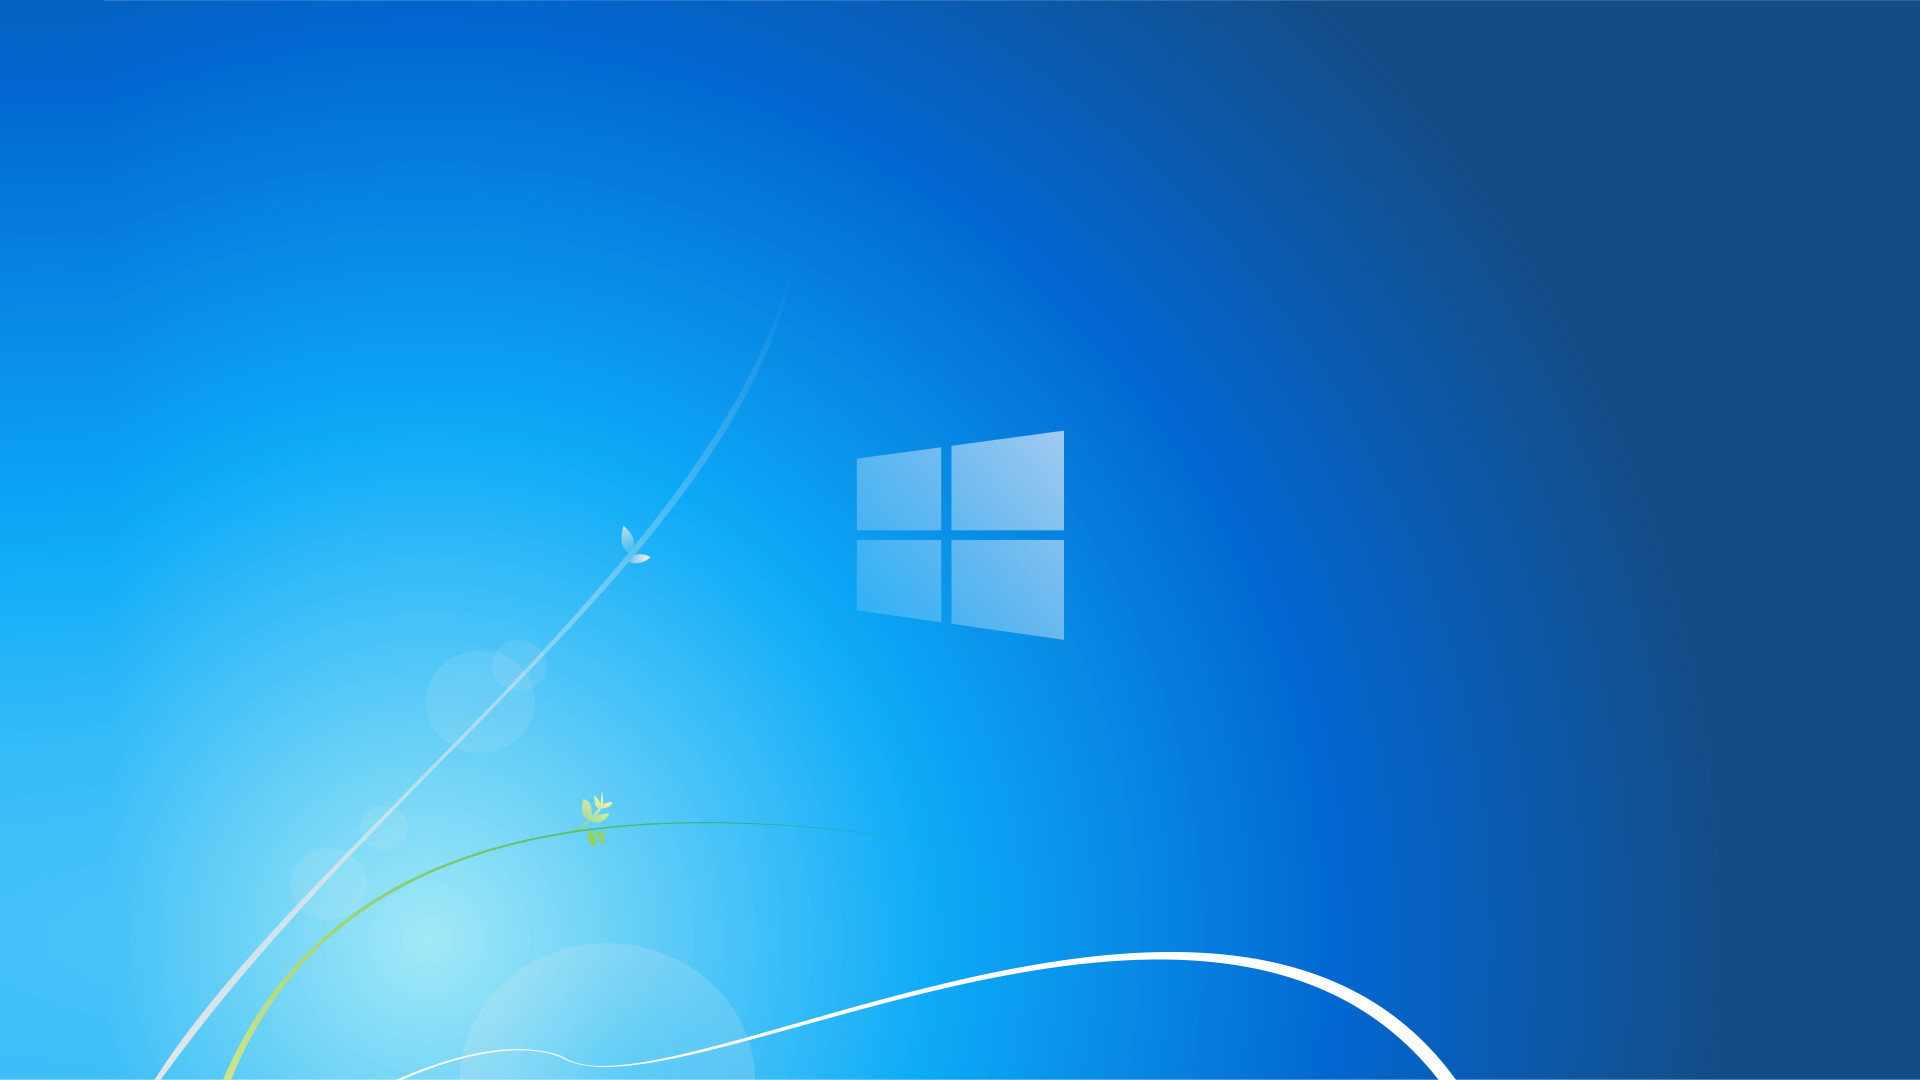 Windows 7 Official Wallpapers ①